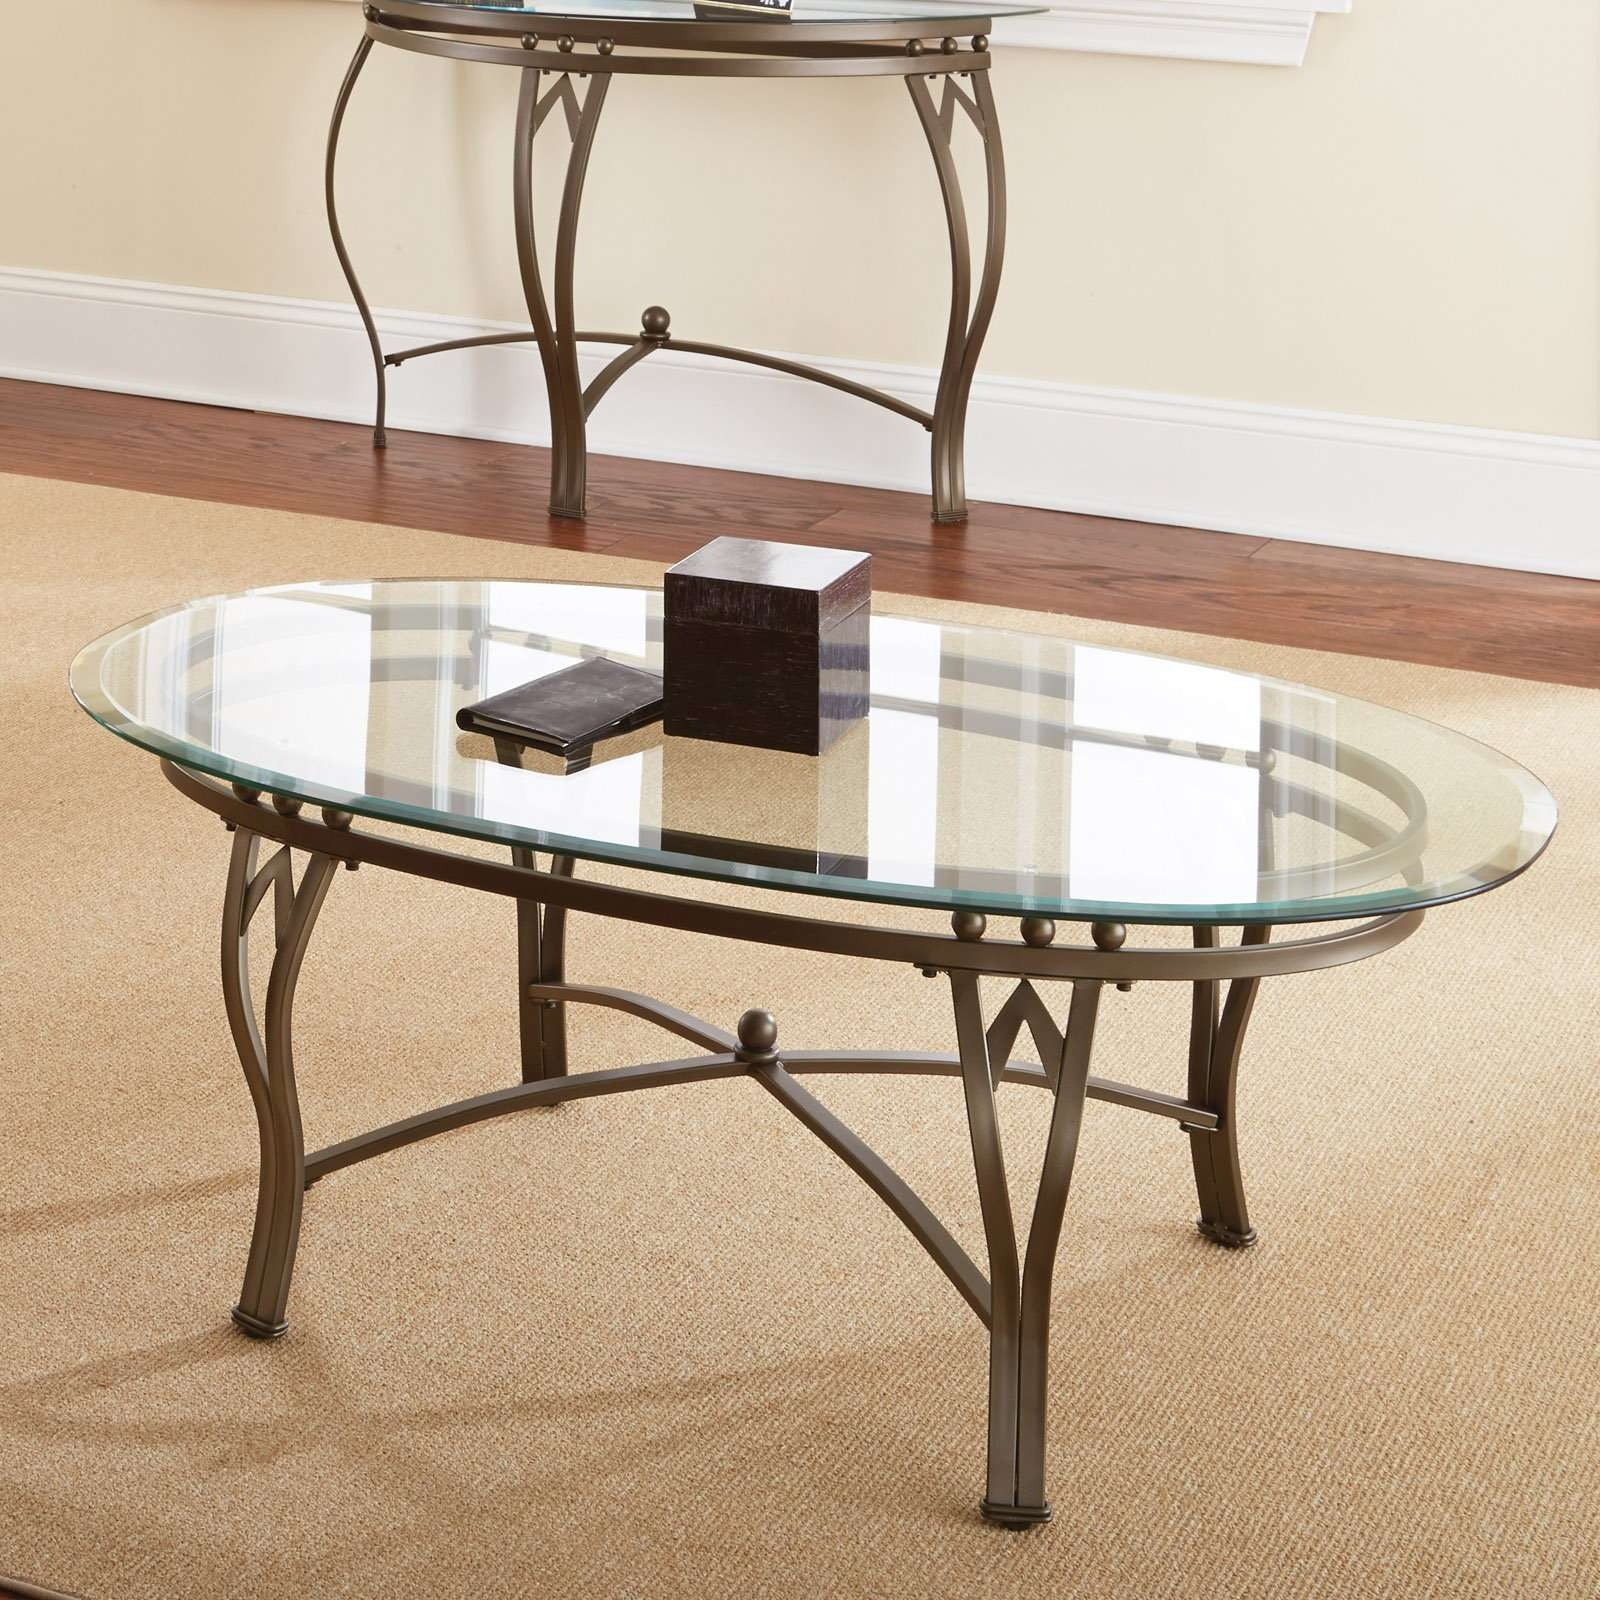 Coffee Table : Marvelous Oval Glass And Wood Coffee Table Low Inside Famous Oblong Coffee Tables (View 3 of 20)